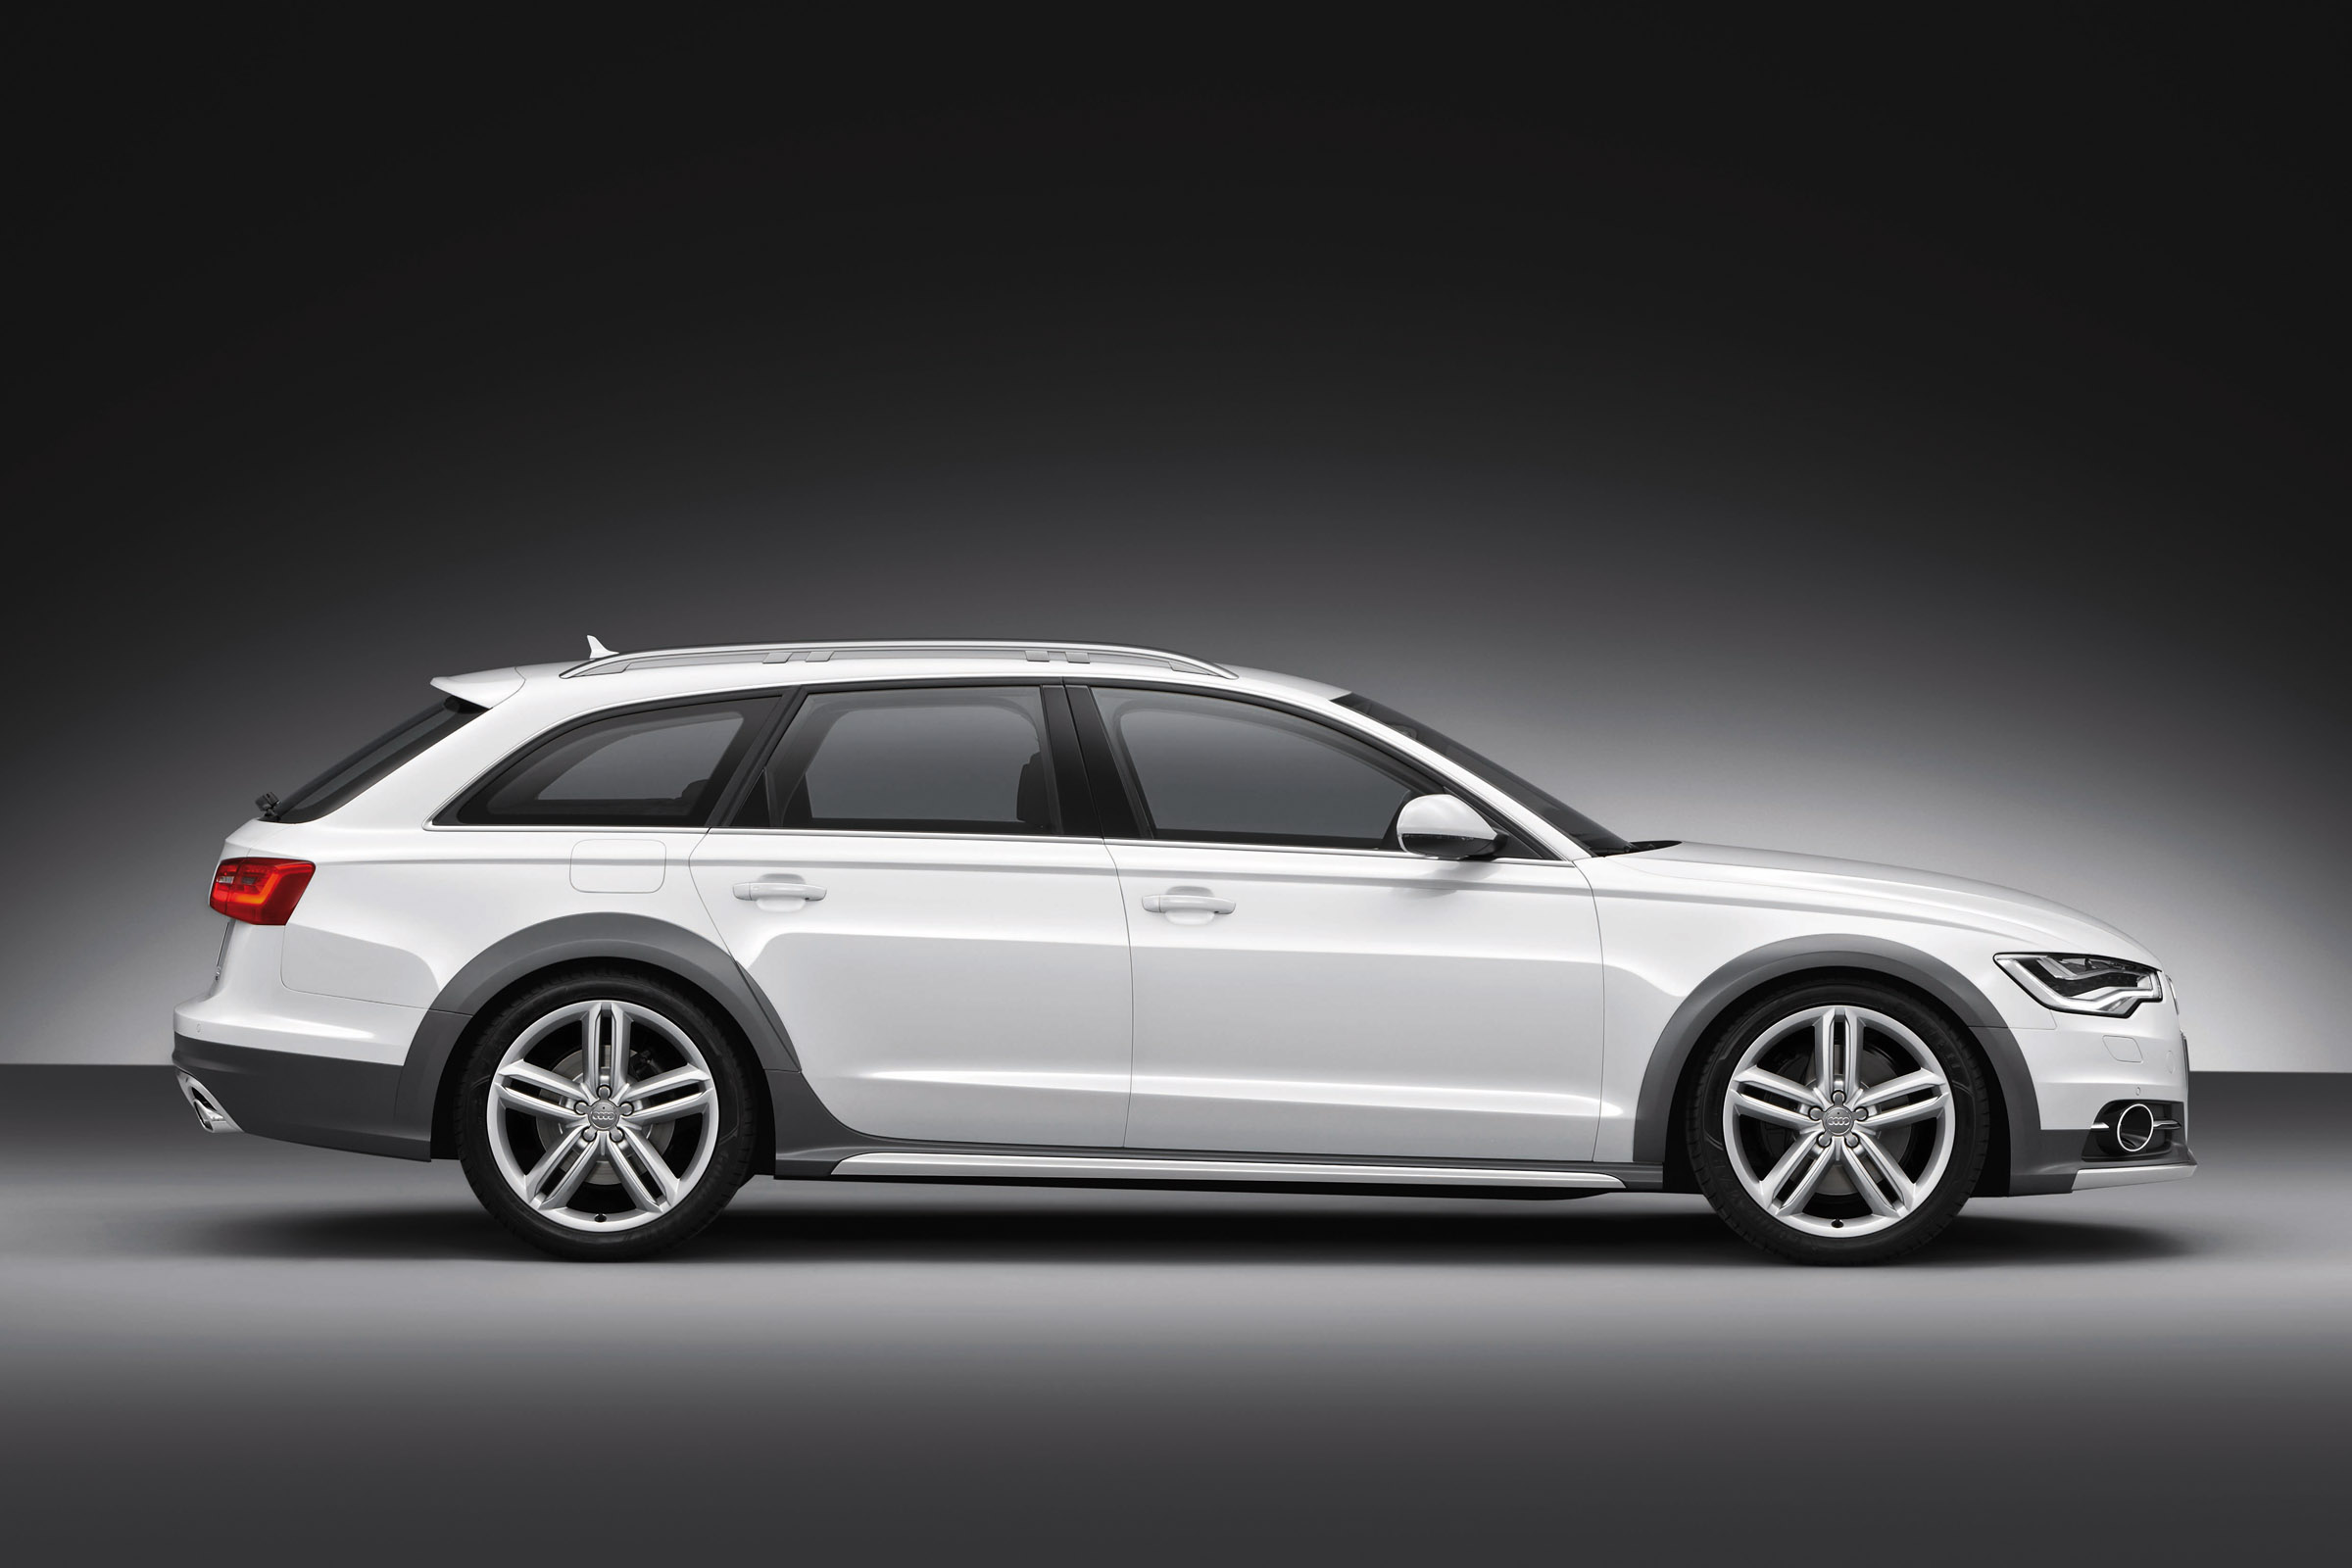 2012 audi a6 allroad quattro uk price 43 145 otr. Black Bedroom Furniture Sets. Home Design Ideas